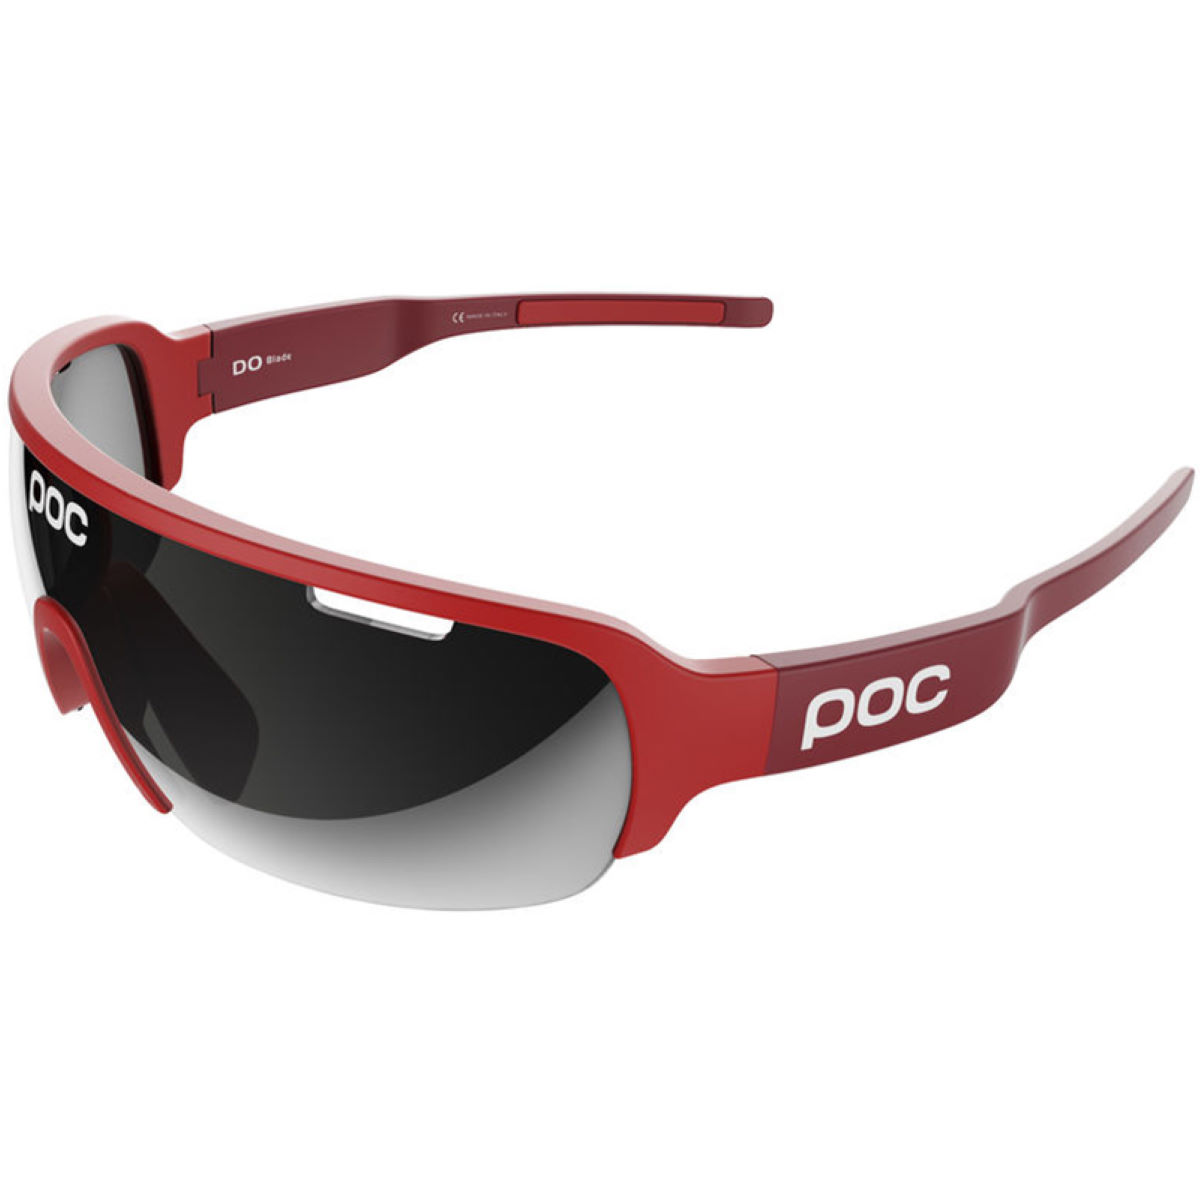 Poc Do Half Blade Clarity Avip Sunglasses - One Size Red/red